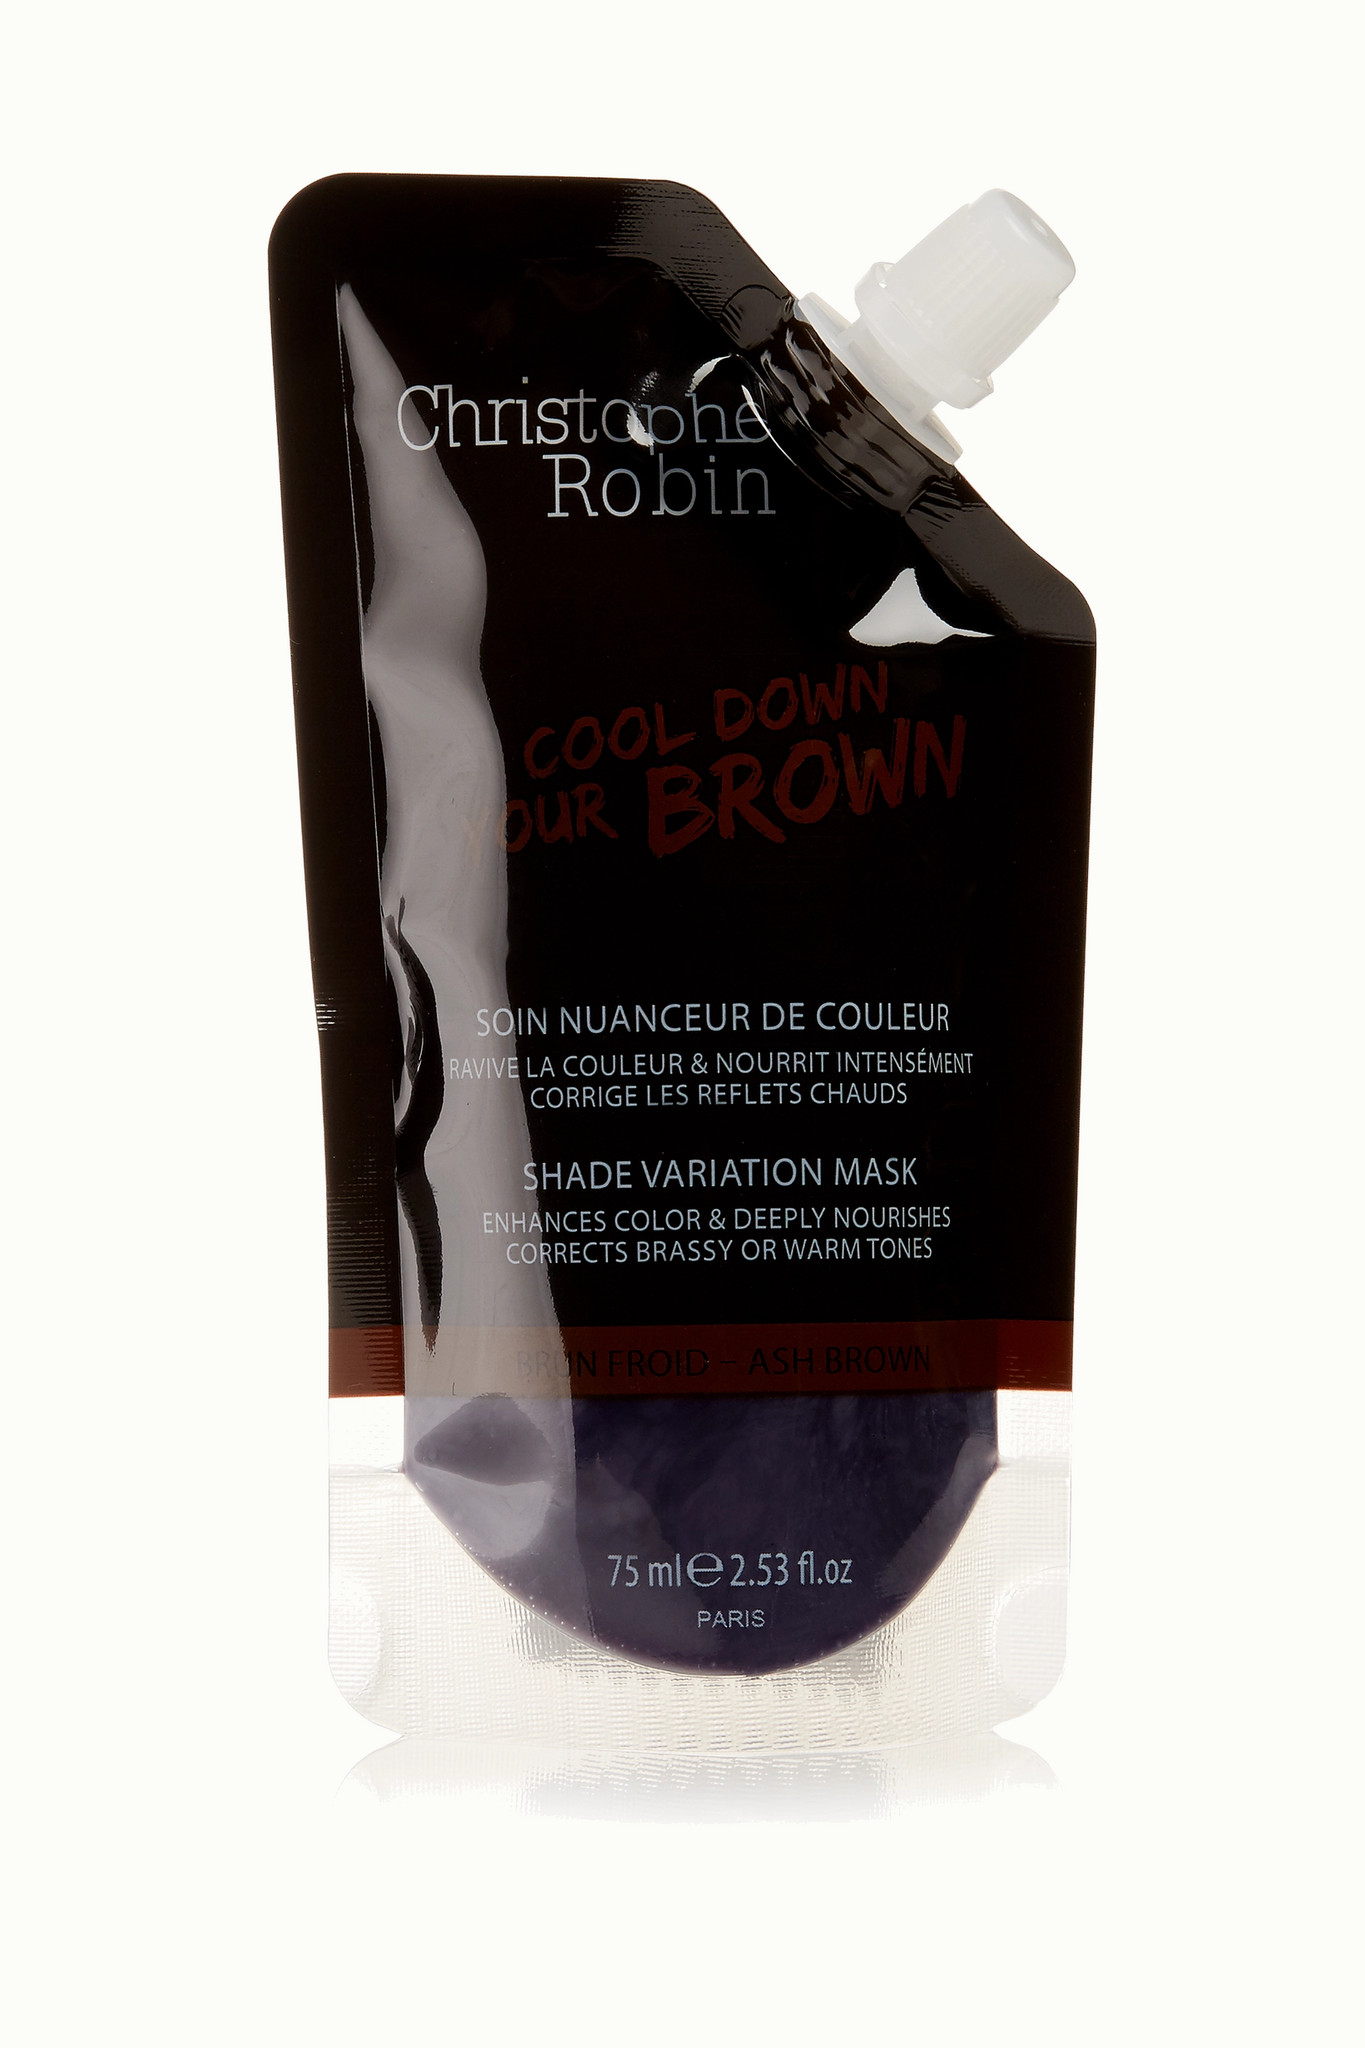 CHRISTOPHE ROBIN - Shade Variation Mask - Ash Brown, 75ml - Purple - one size